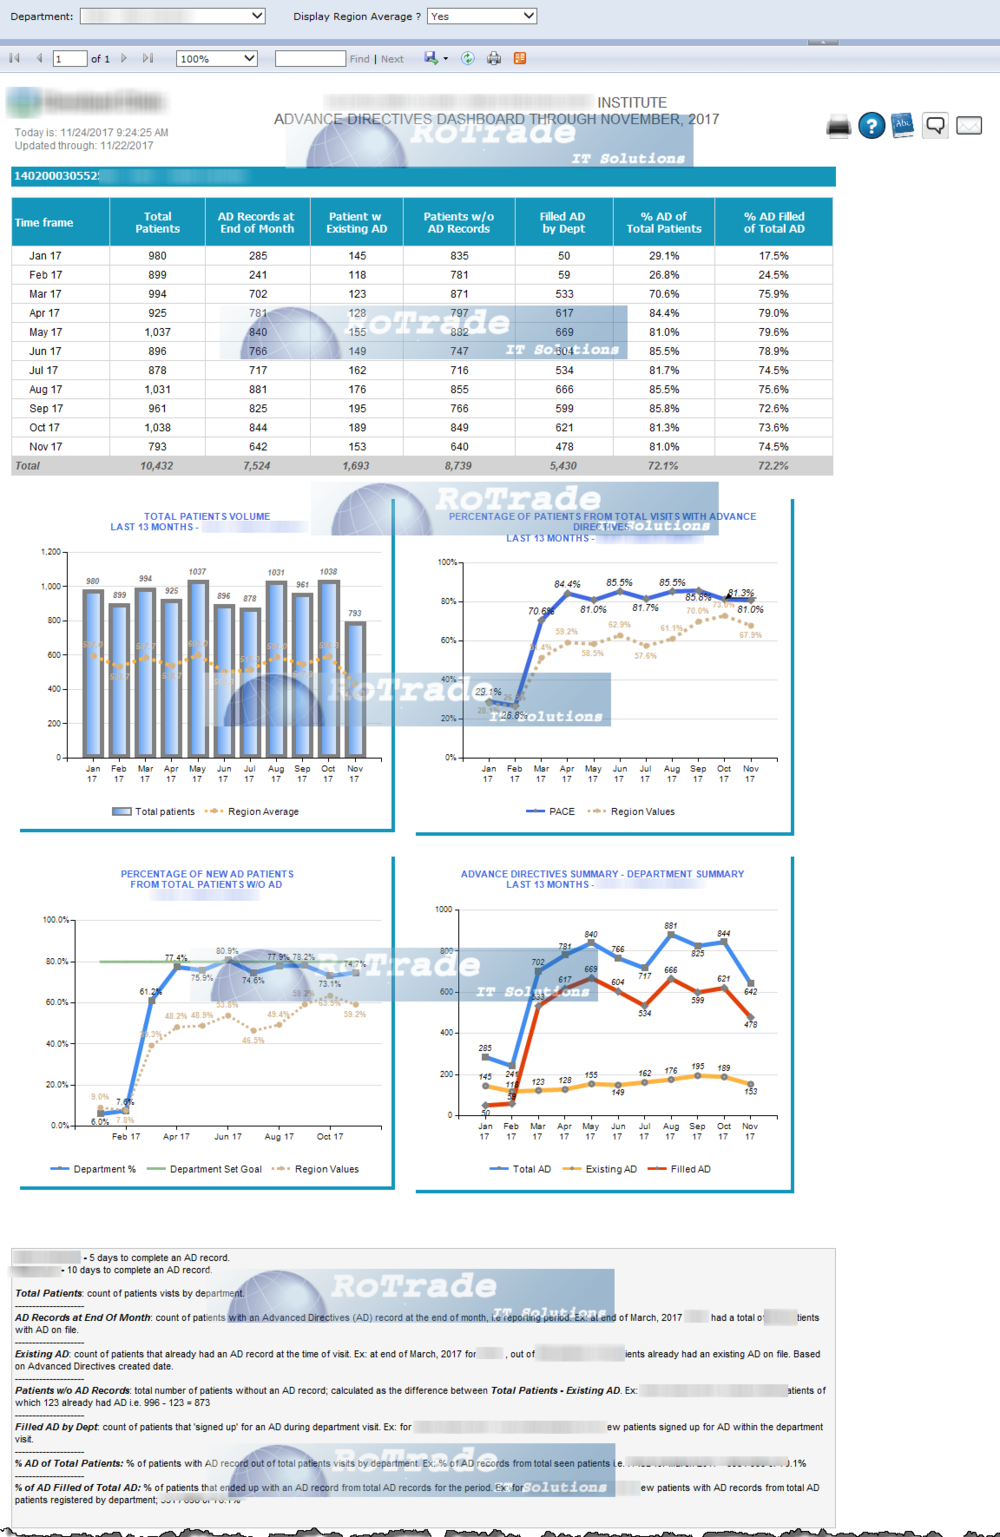 Sample dashboard with tablix, charts and legend.